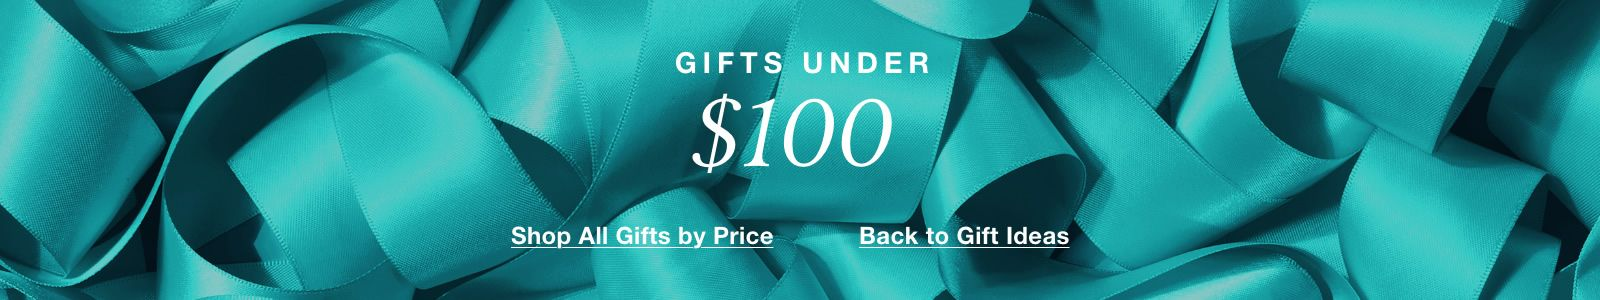 Gift Under, $ 100, Shop All Gifts by Price, Back to Gift Ideas